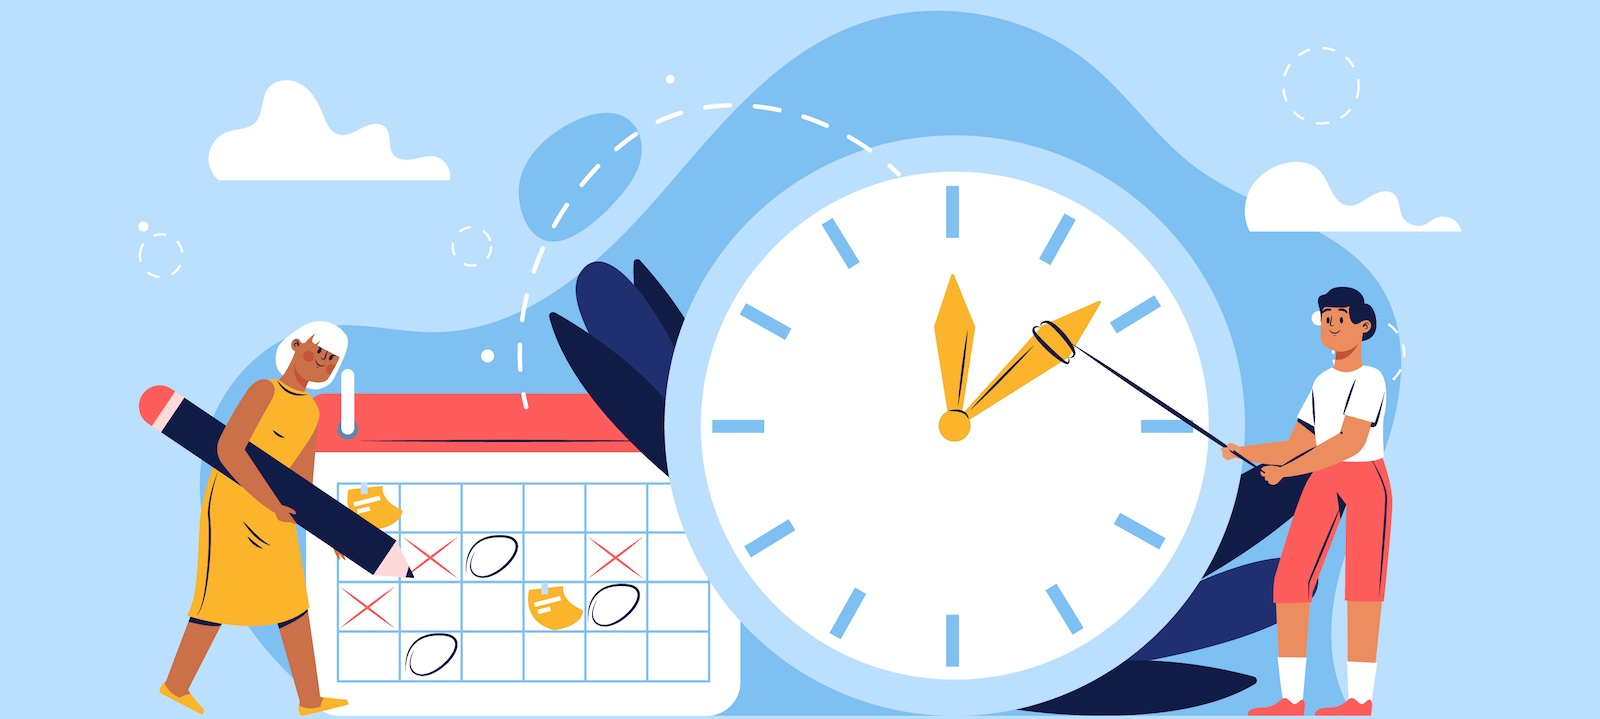 1614960533 789 11 Misconceptions about time management that hurt your productivity 11 Misconceptions about time management that hurt your productivity 2